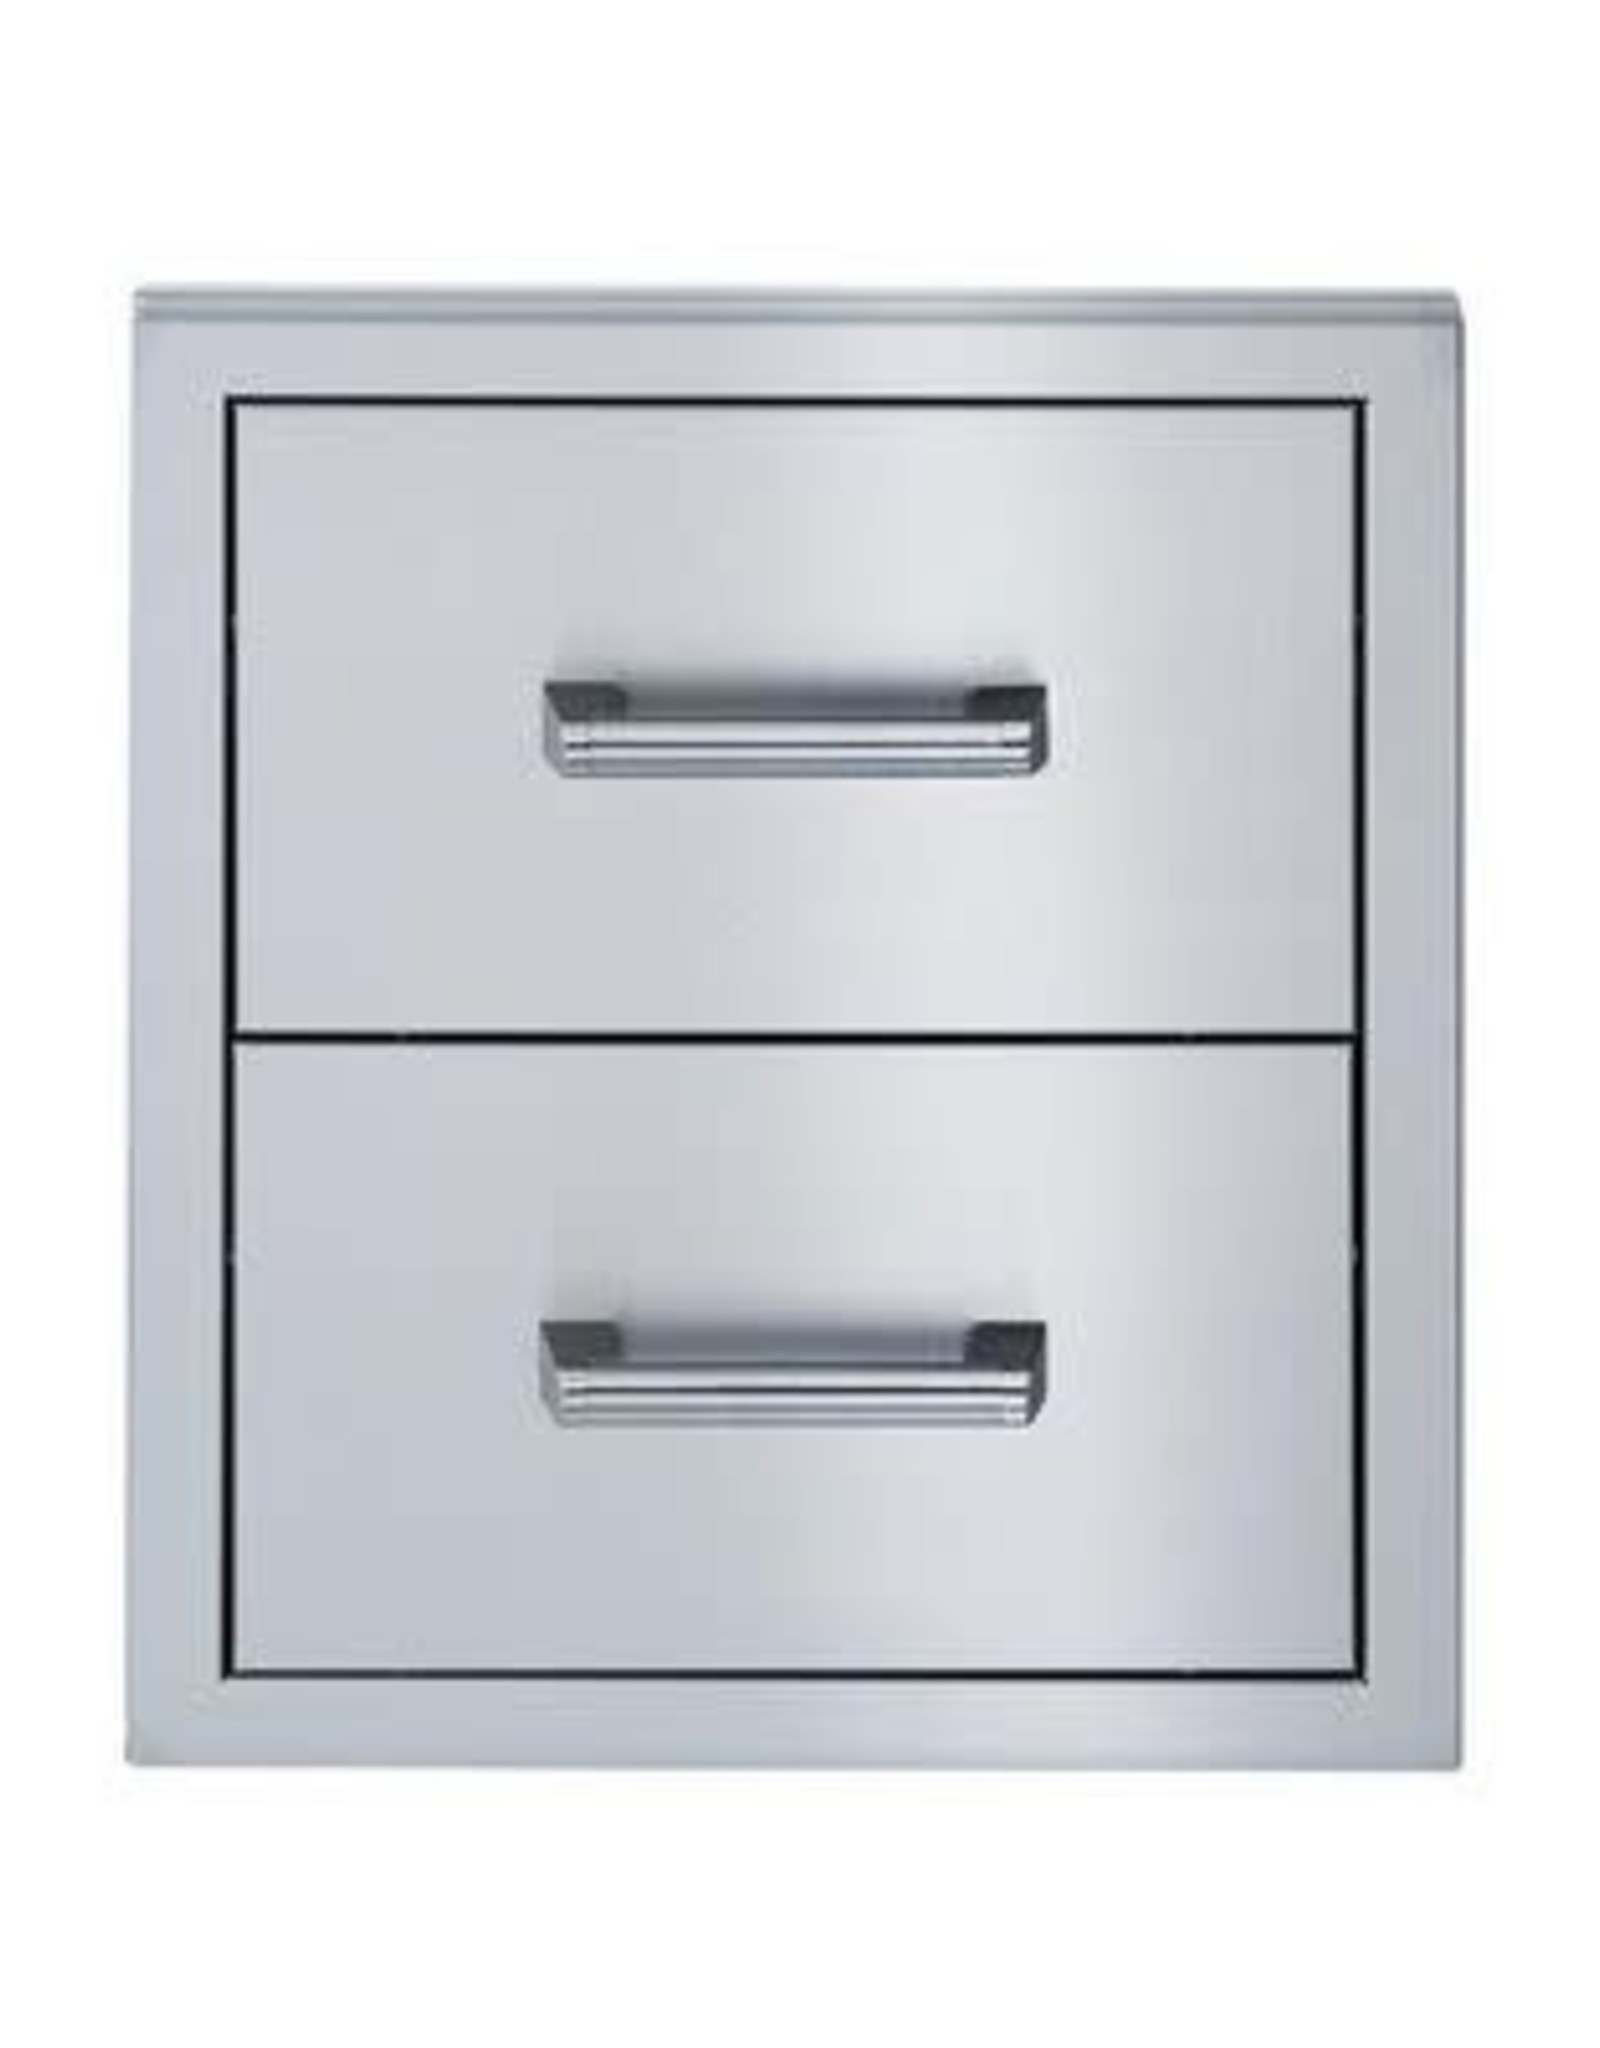 Broilmaster Broilmaster Double Drawer for Stainless Steel Gas Grills - BSAW2022D